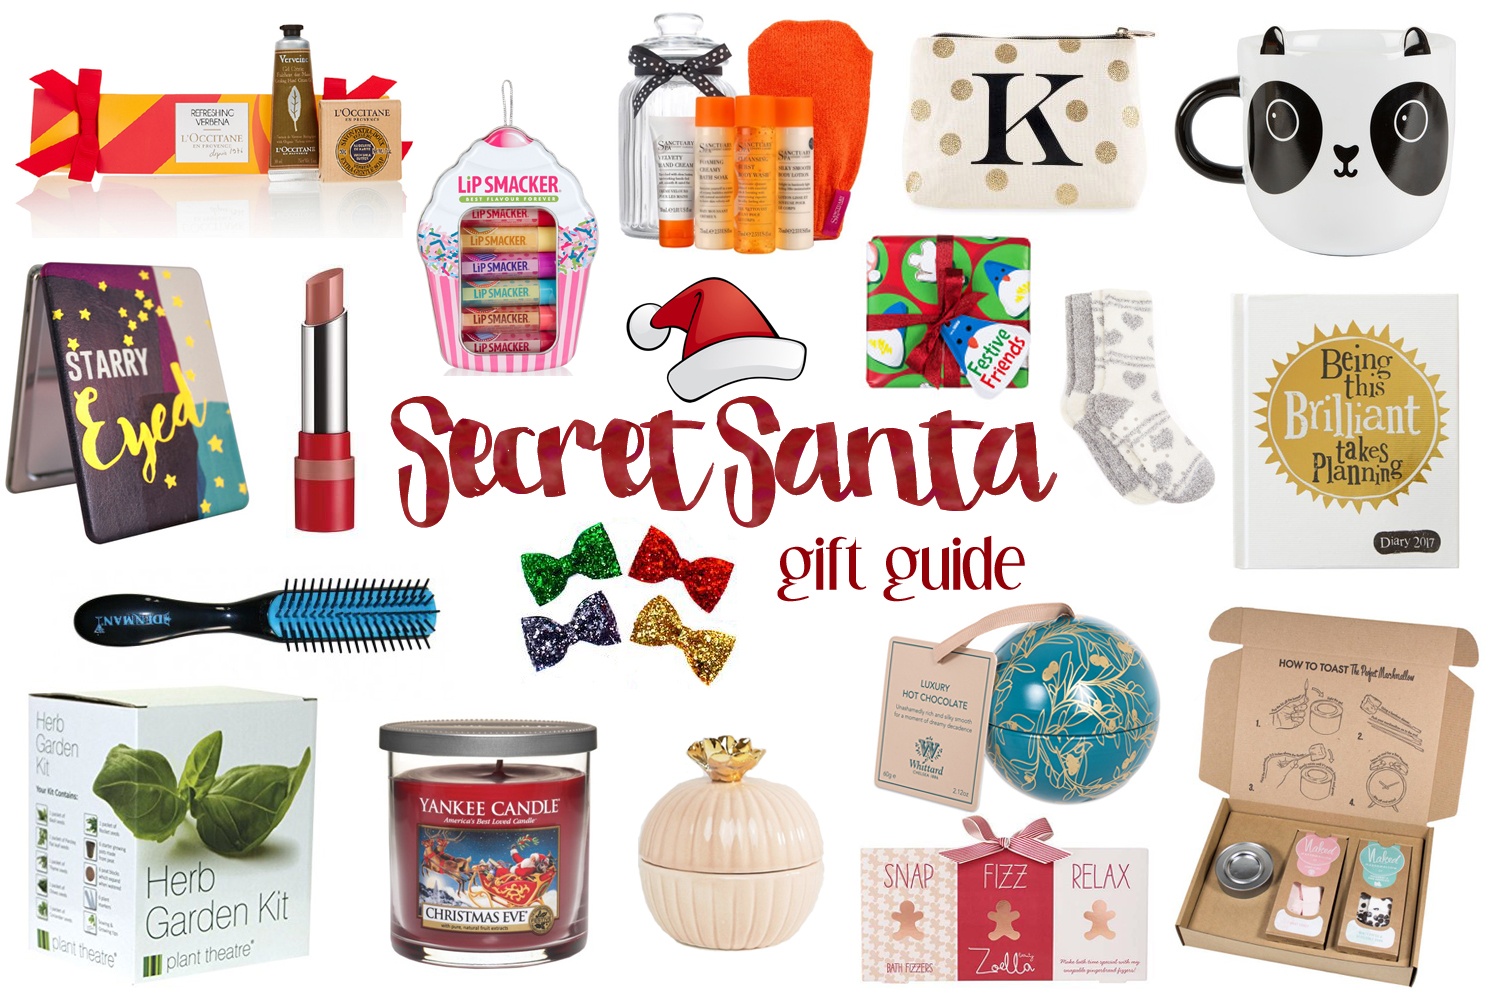 Secret Santa Gift Guide, Stocking Fillers for Under £15, Katie Kirk Loves, UK Blogger, Gift Guide, Christmas Gift Ideas, Secret Santa Gift Ideas, Beauty Gifts, Home Gifts, Food Gifts, Handmade Gifts, Gifts for Her, Gifts for Him, UK Gifts